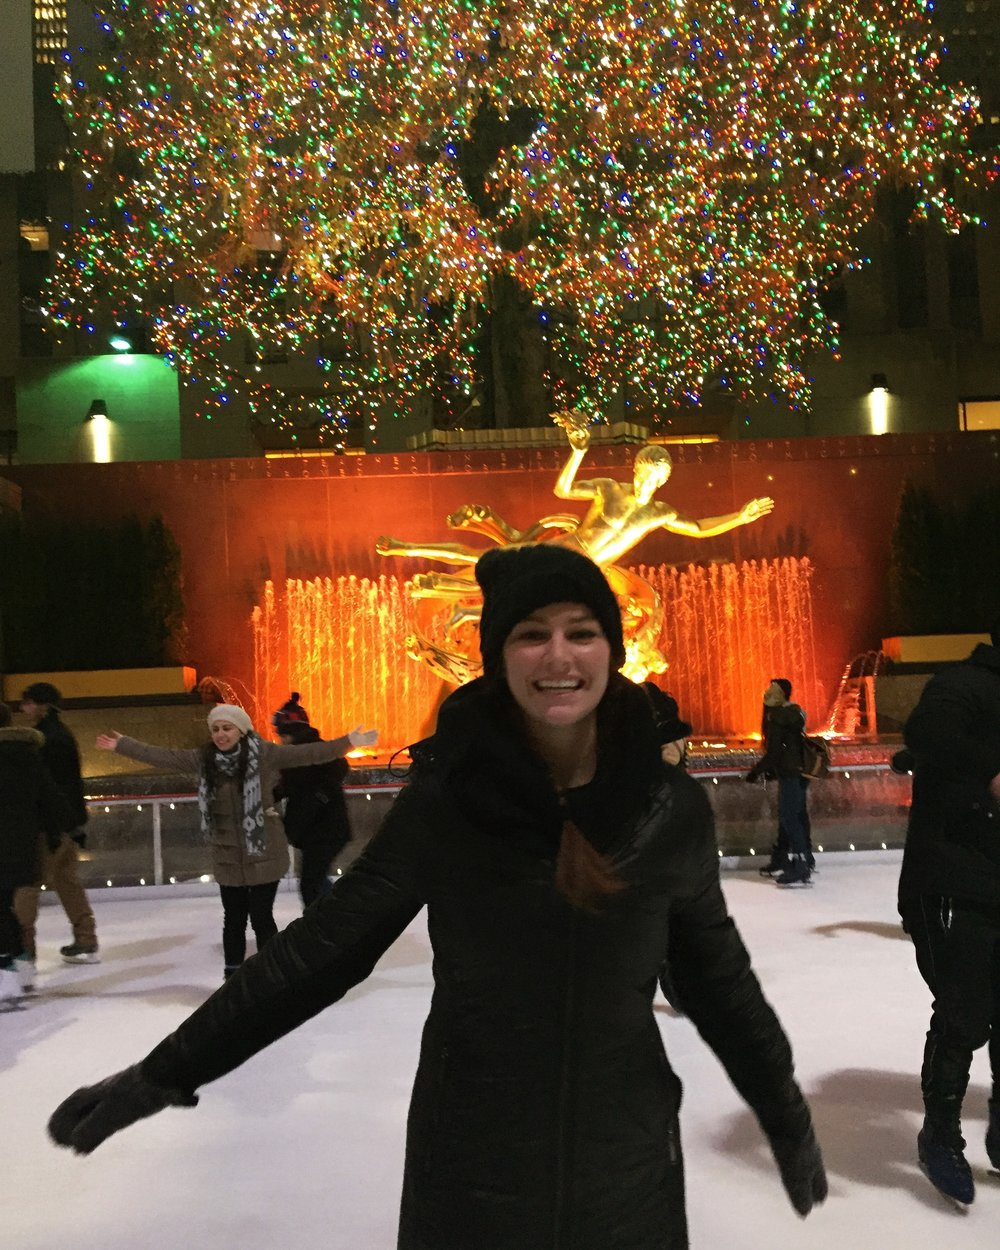 Iceskating at Rockefeller Center